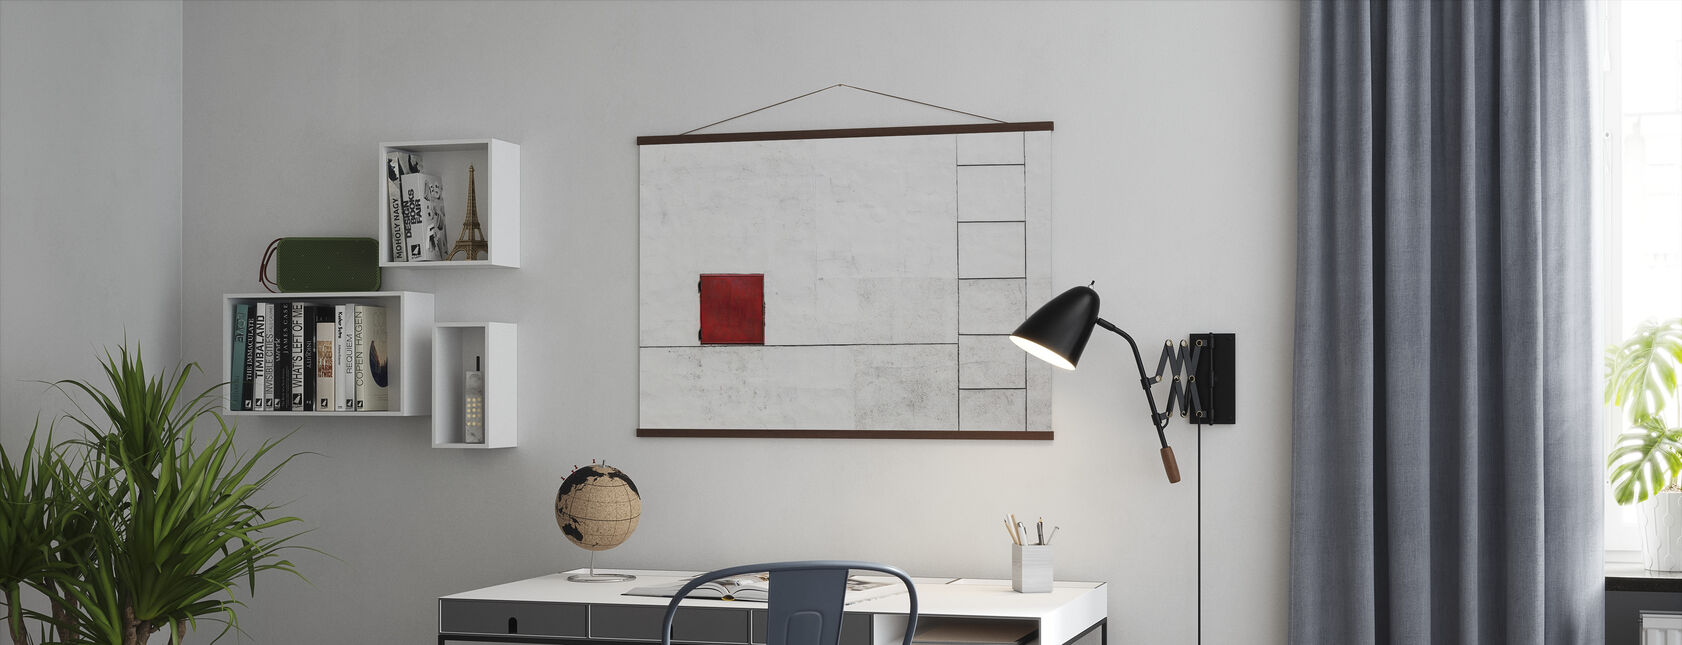 Suprematism is all Around - Poster - Office